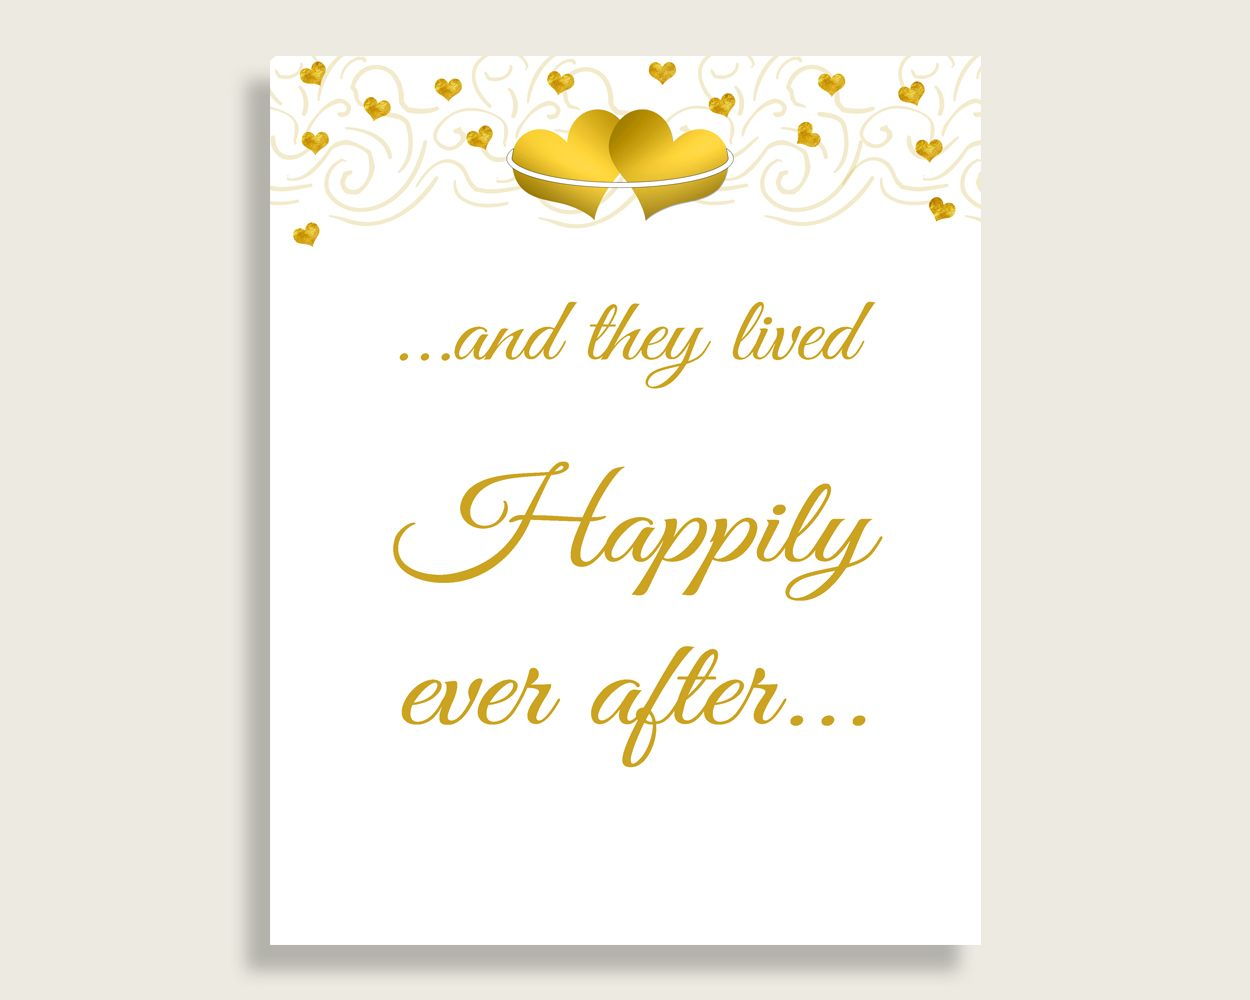 9b7545ea817 Happily Ever After Bridal Shower Happily Ever After Gold Hearts Bridal  Shower Happily Ever After Bridal Shower Gold Hearts Happily 6GQOT   bridalshower ...